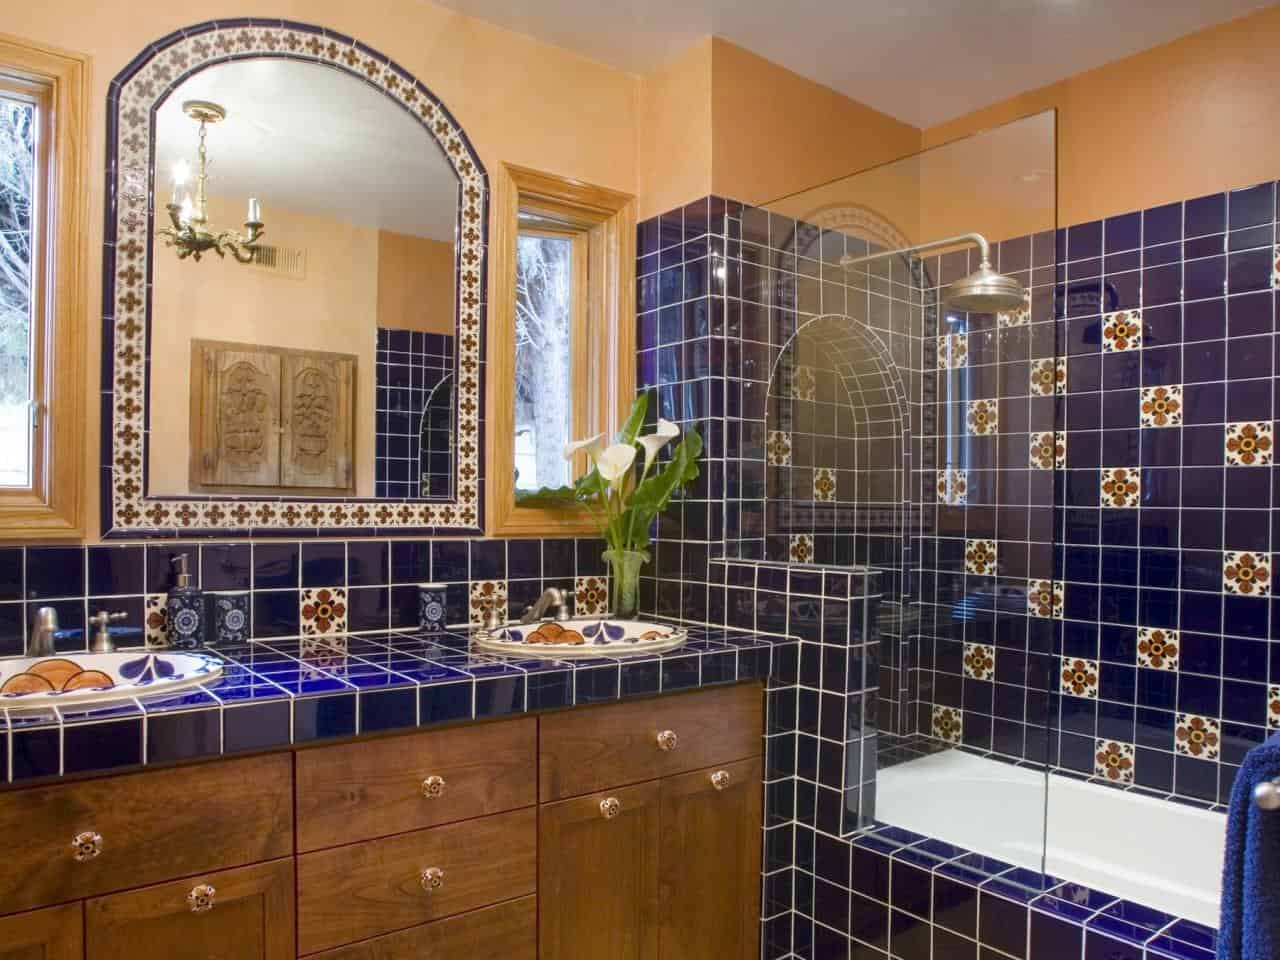 Bathroom Tiles Designs And Colors 44 top talavera tile design ideas